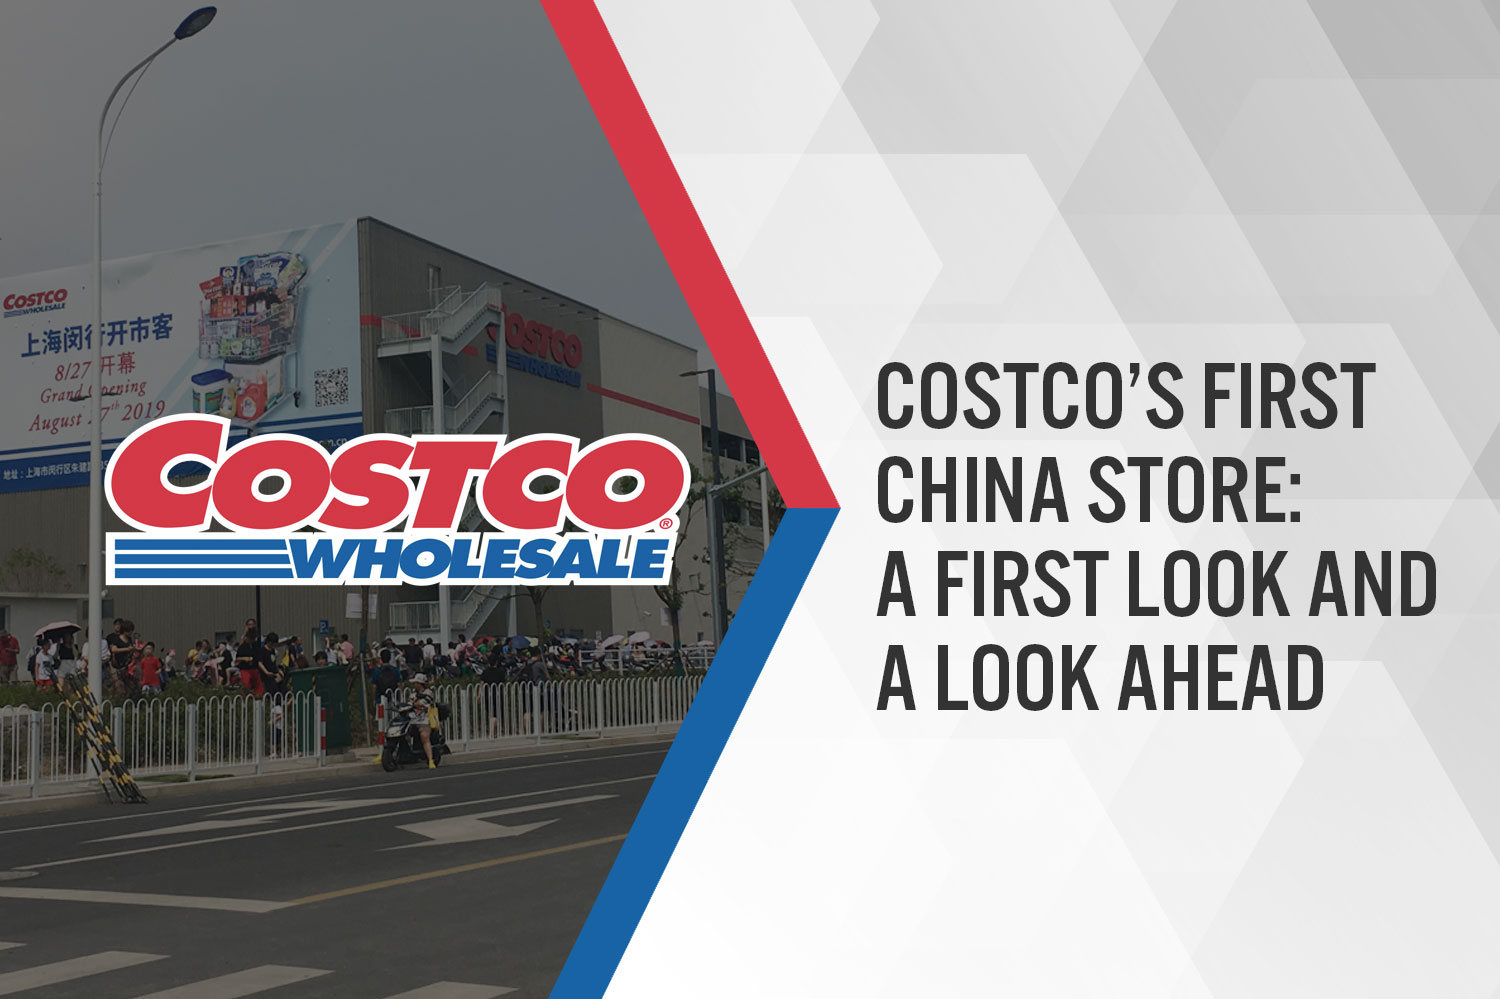 Costco's First China Store: A First Look and a Look Ahead